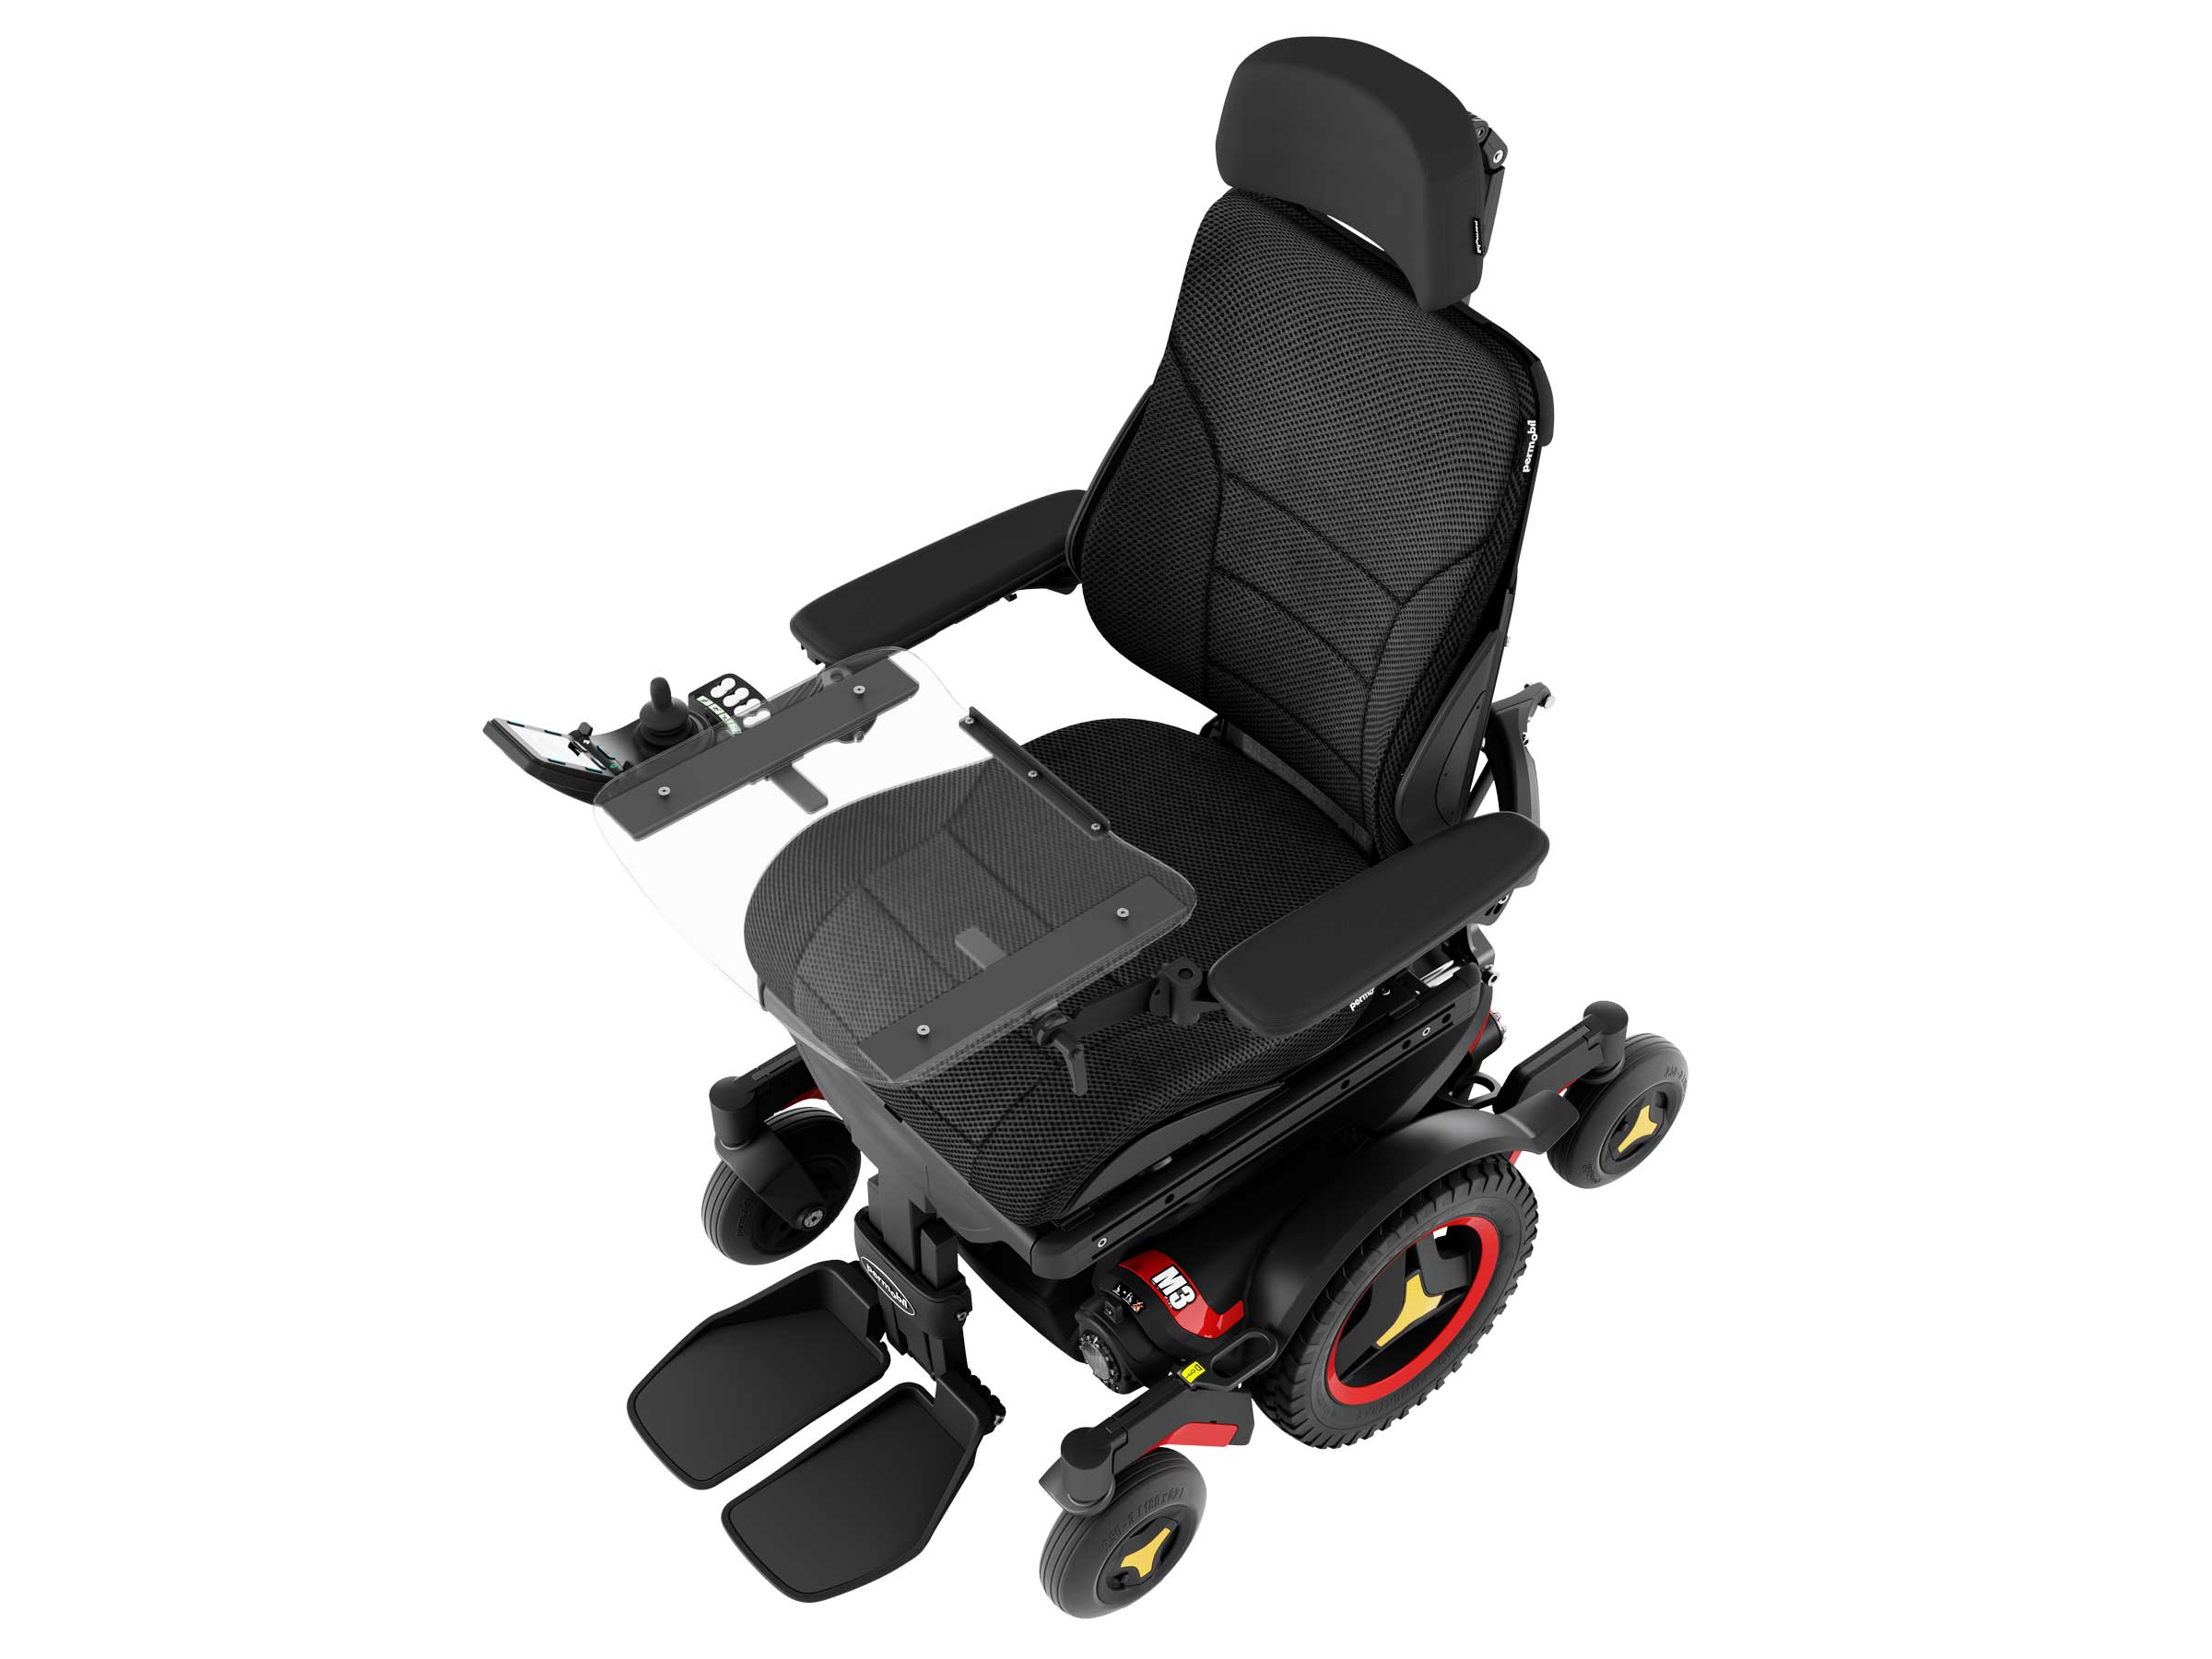 Tray Angle of Power Wheelchair